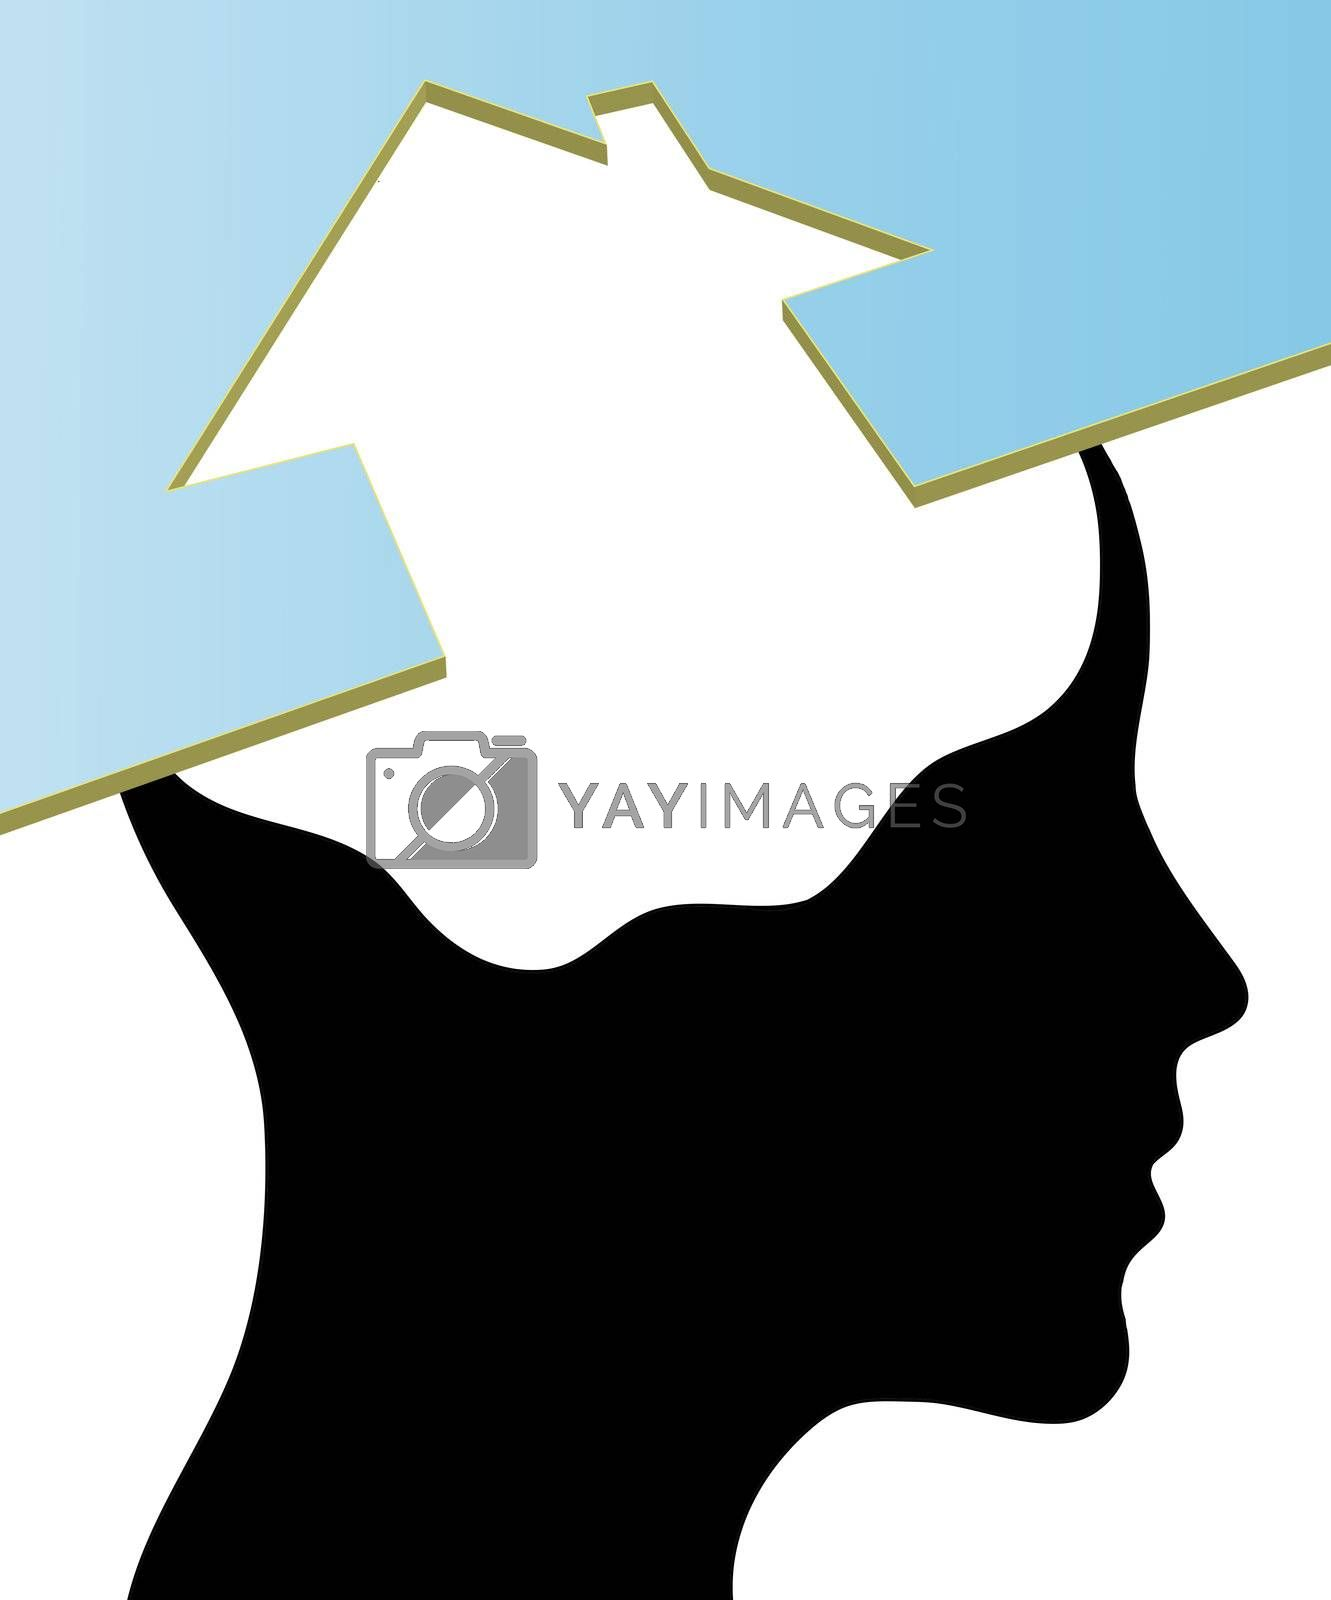 A concept for Dream Home, where Thinking head silhouette is shown